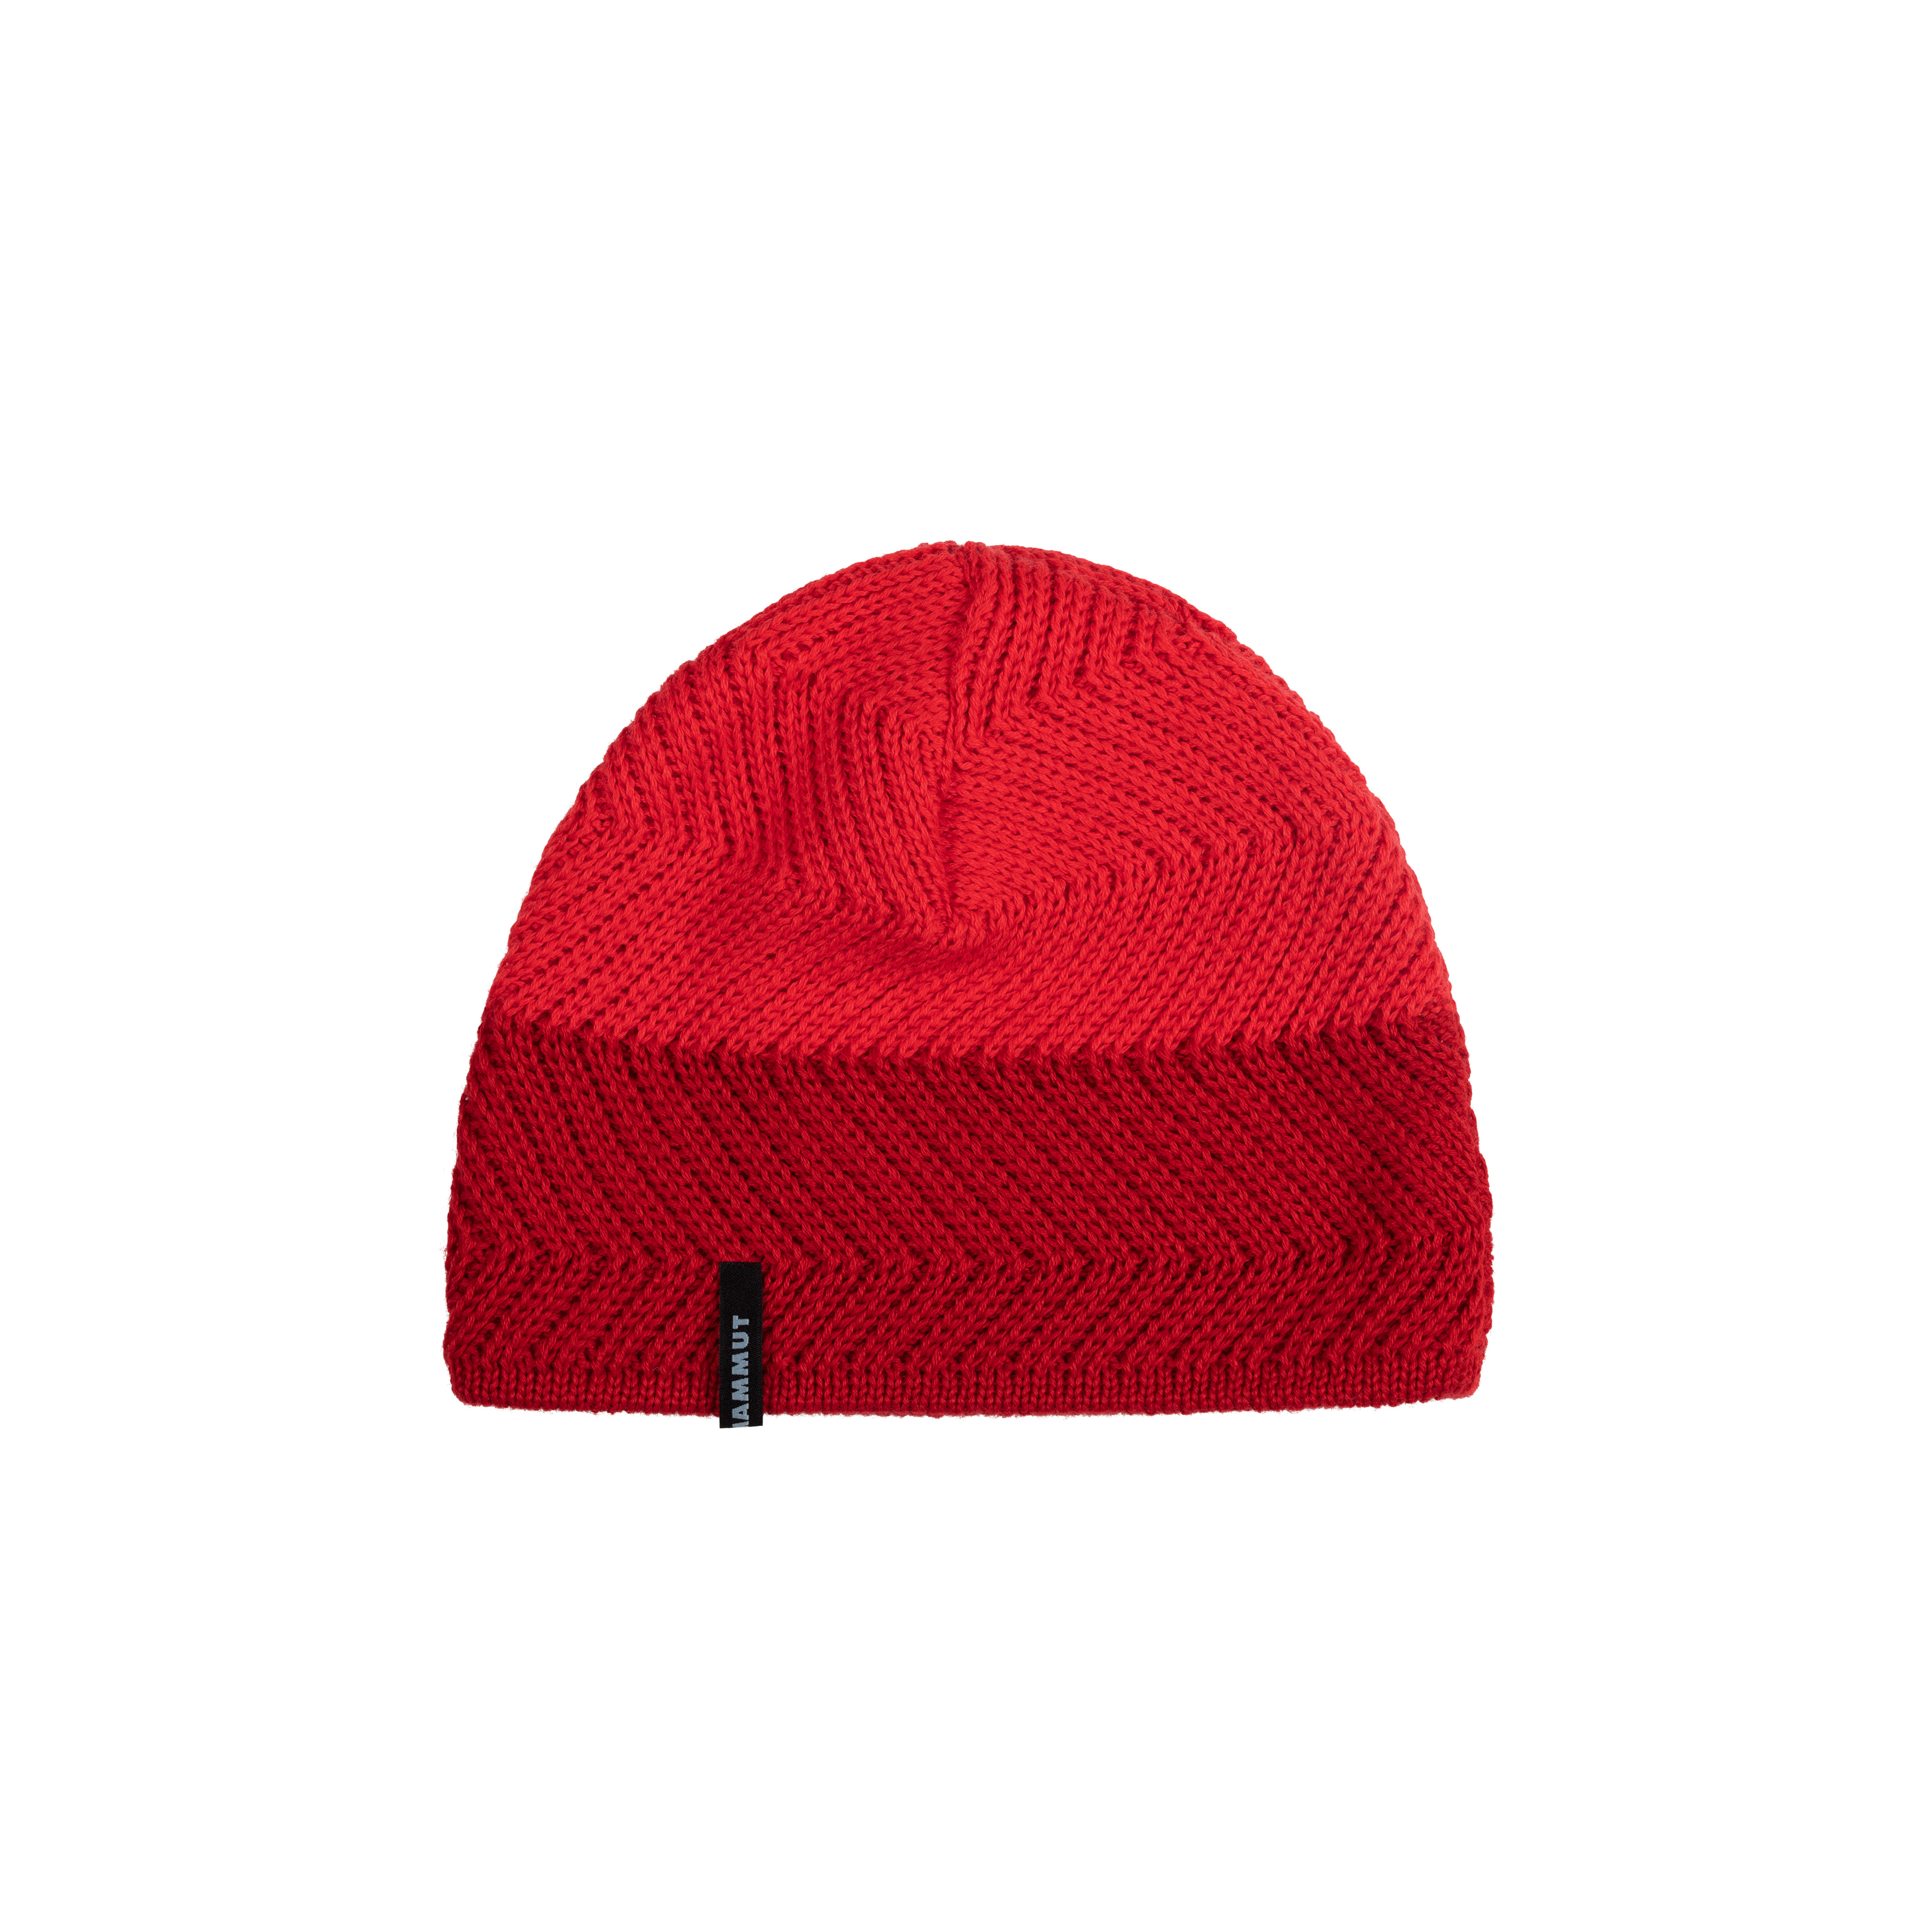 La Liste Beanie - magma-spicy, one size product image